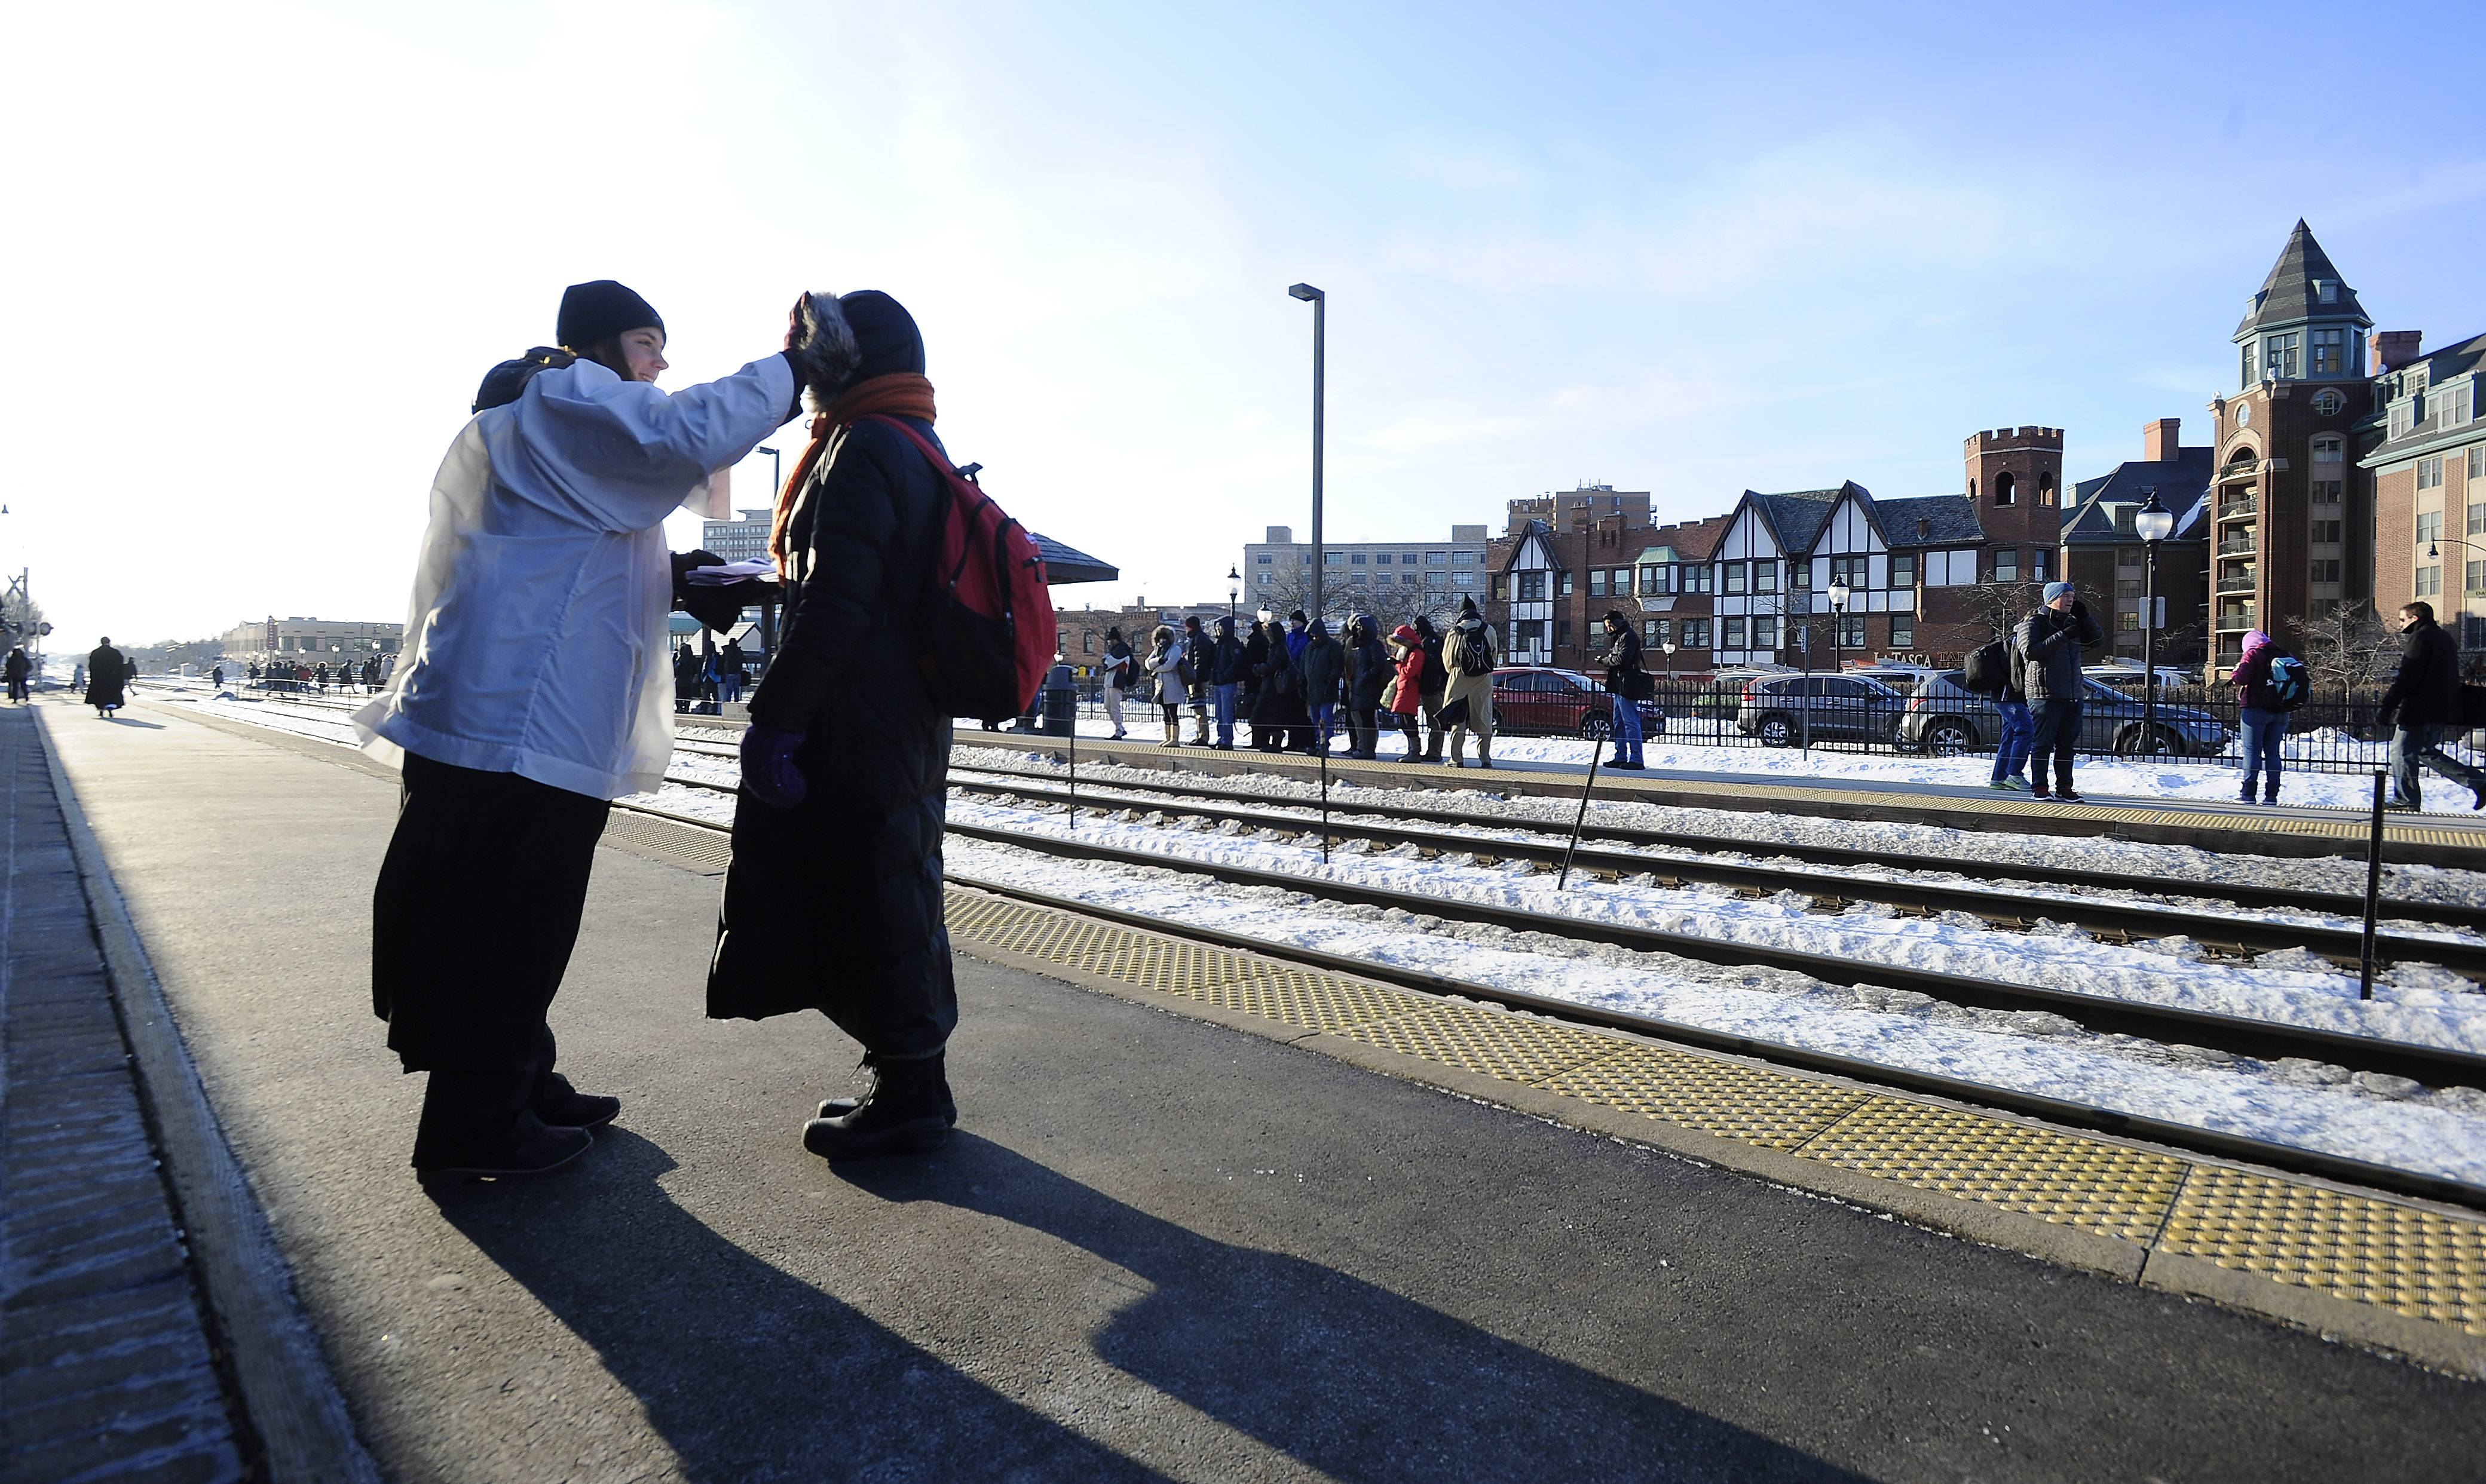 Beth Carter, 28, a member of St. Simon's Episcopal Church in Arlington Heights, gives ashes to Elizabeth Eich of Arlington Heights at the Metra station on Ash Wednesday.